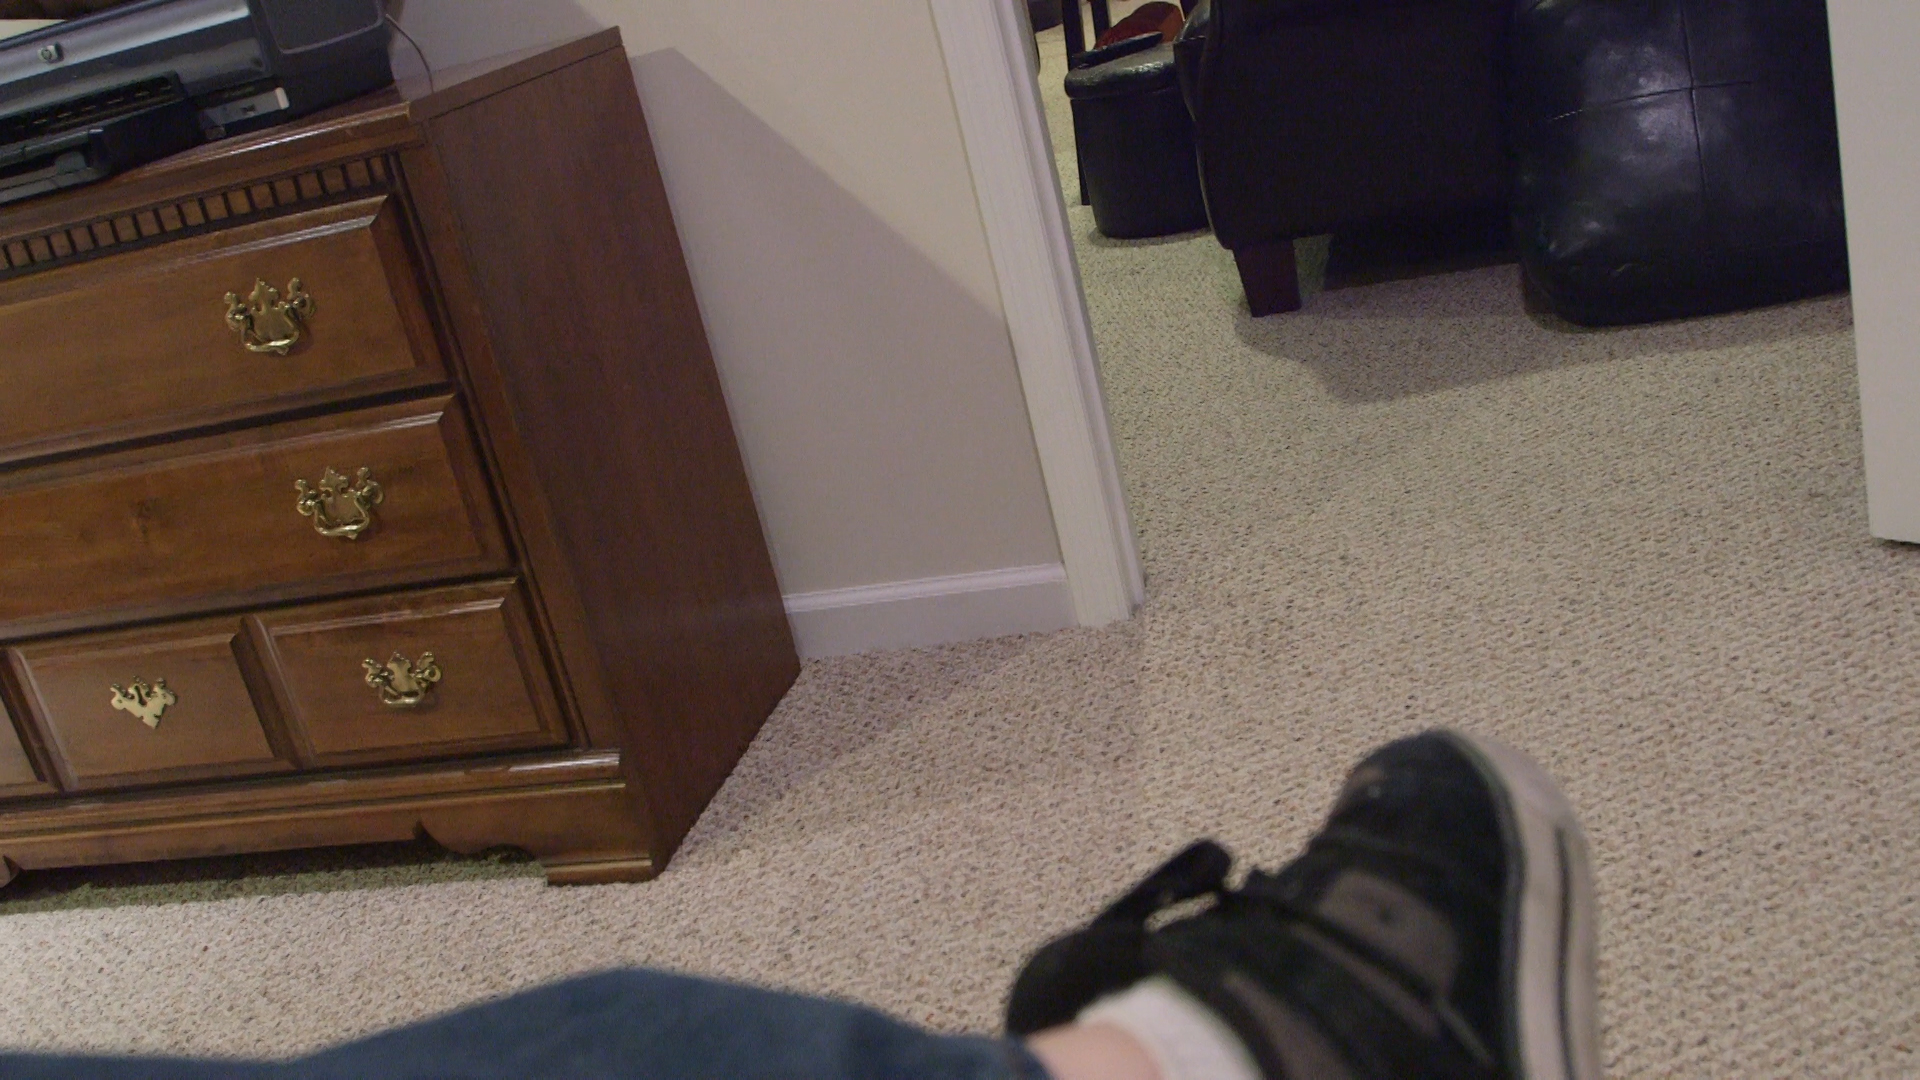 Sequence 01173.jpeg